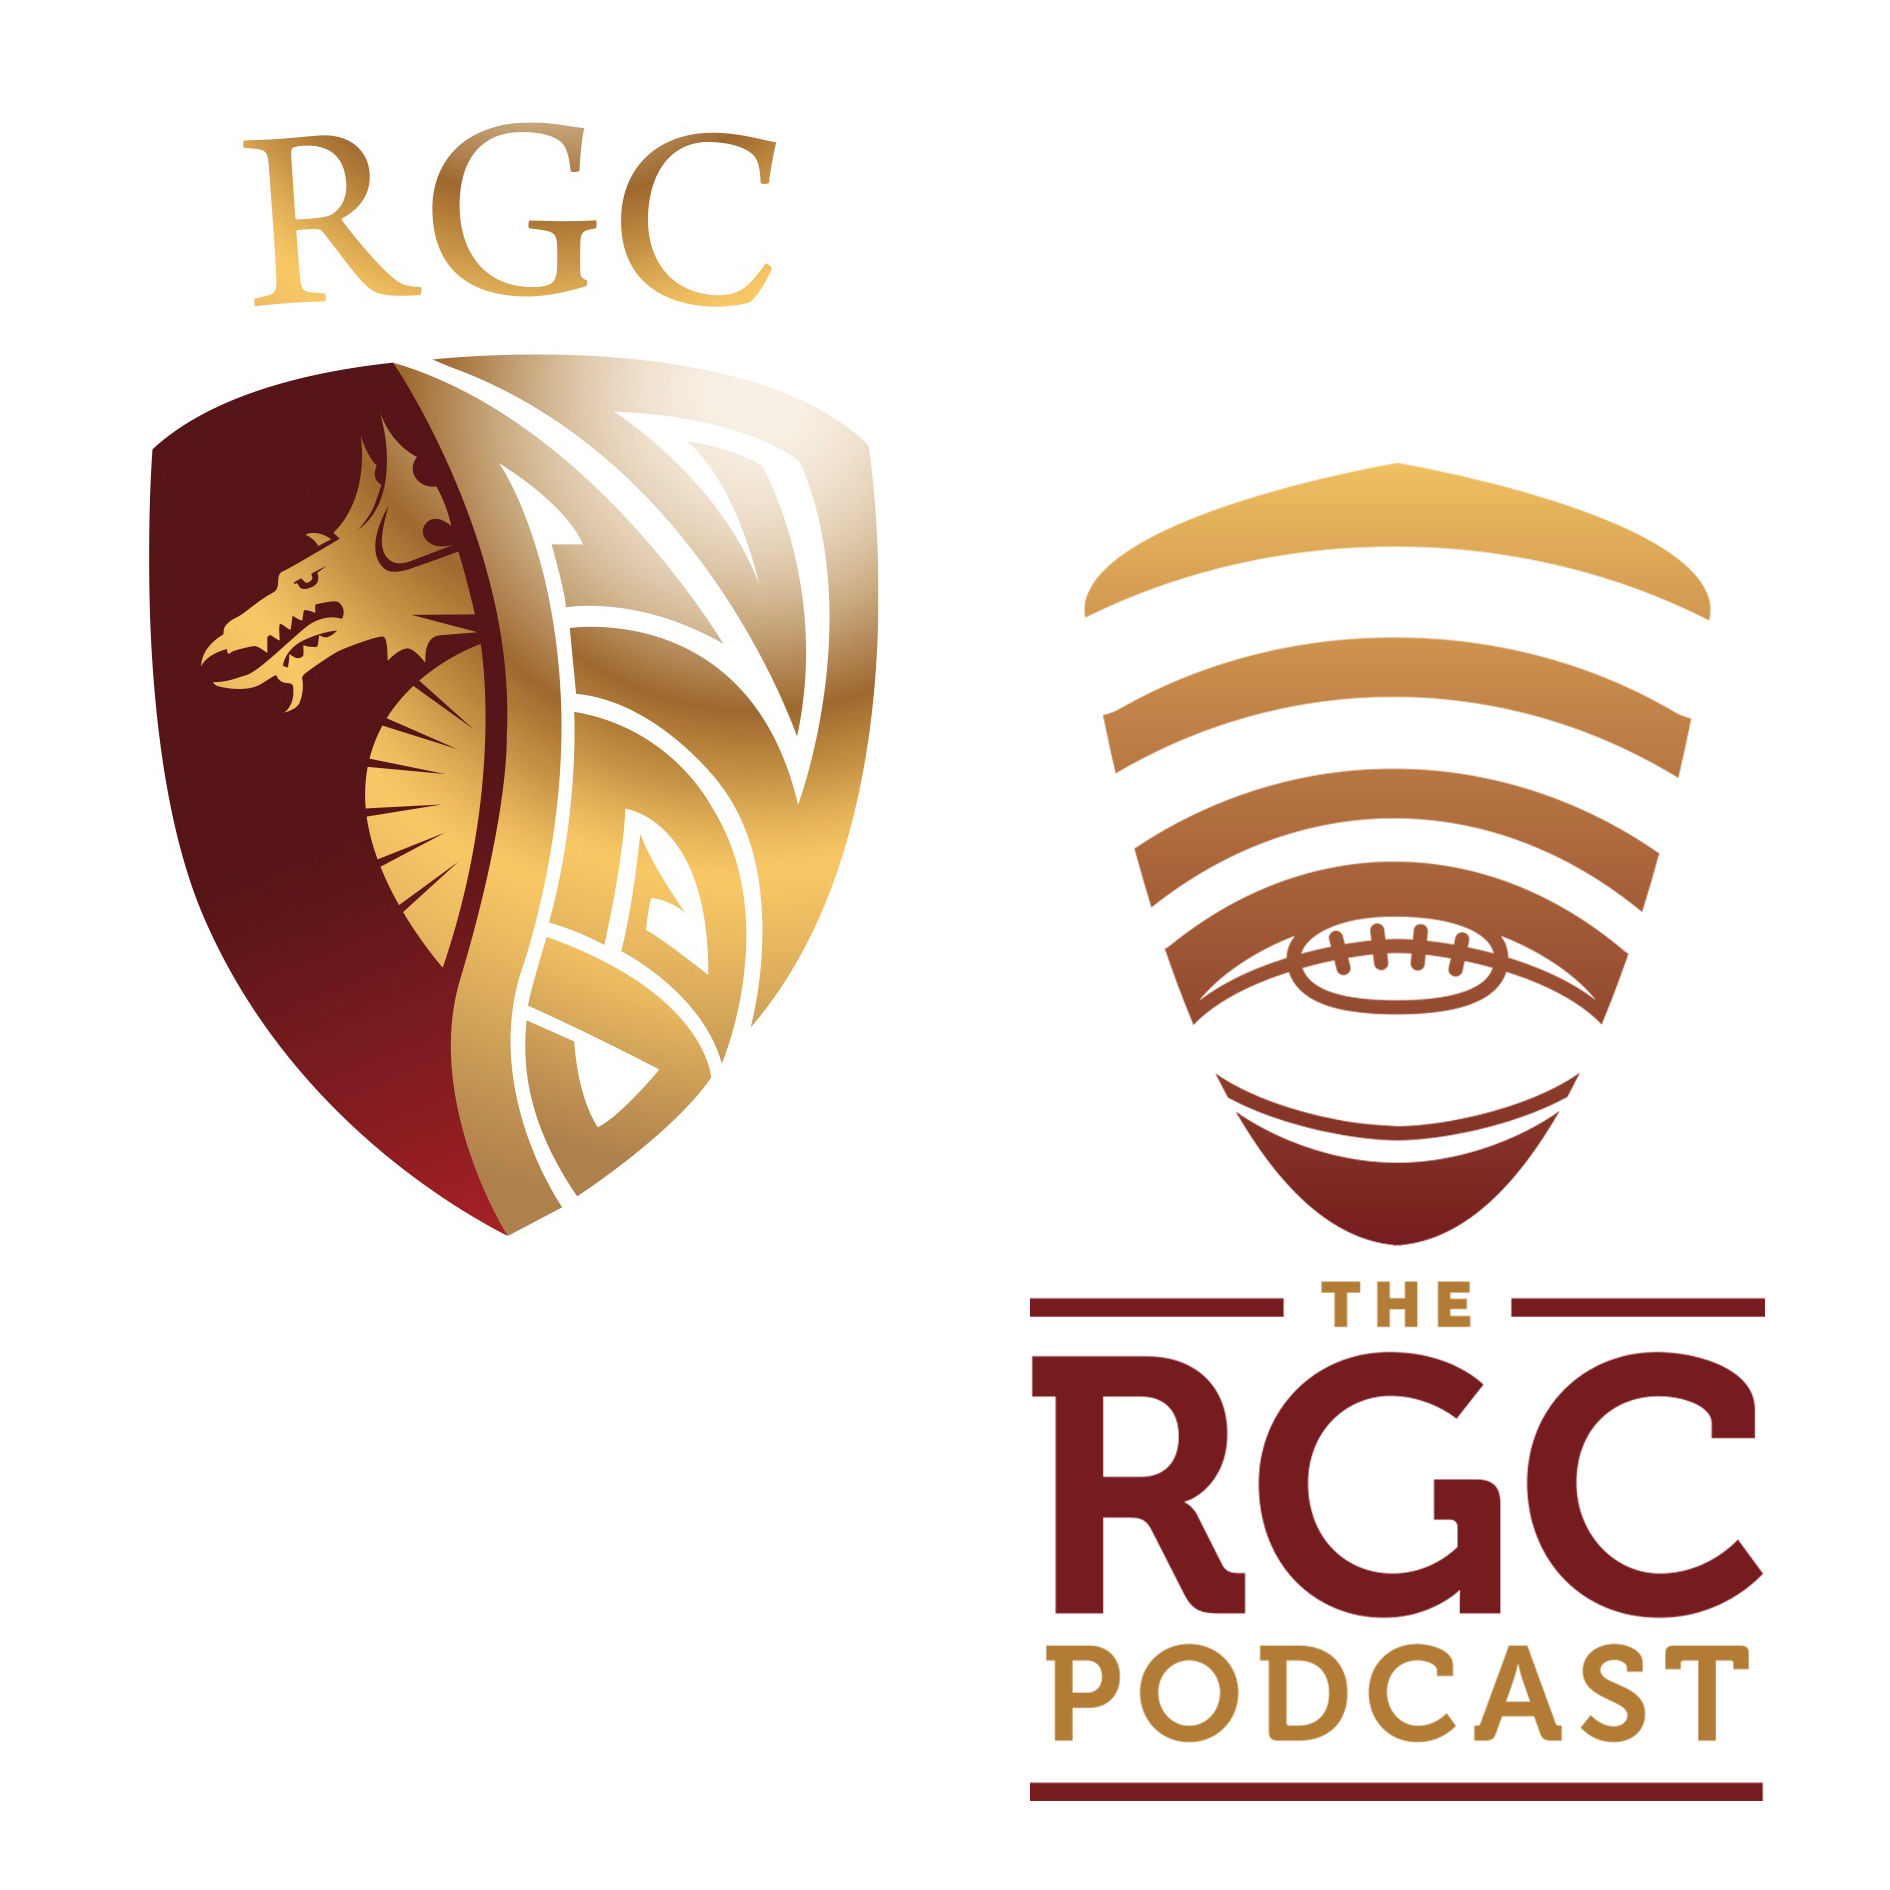 The RGC Rugby Podcast - Episode #1